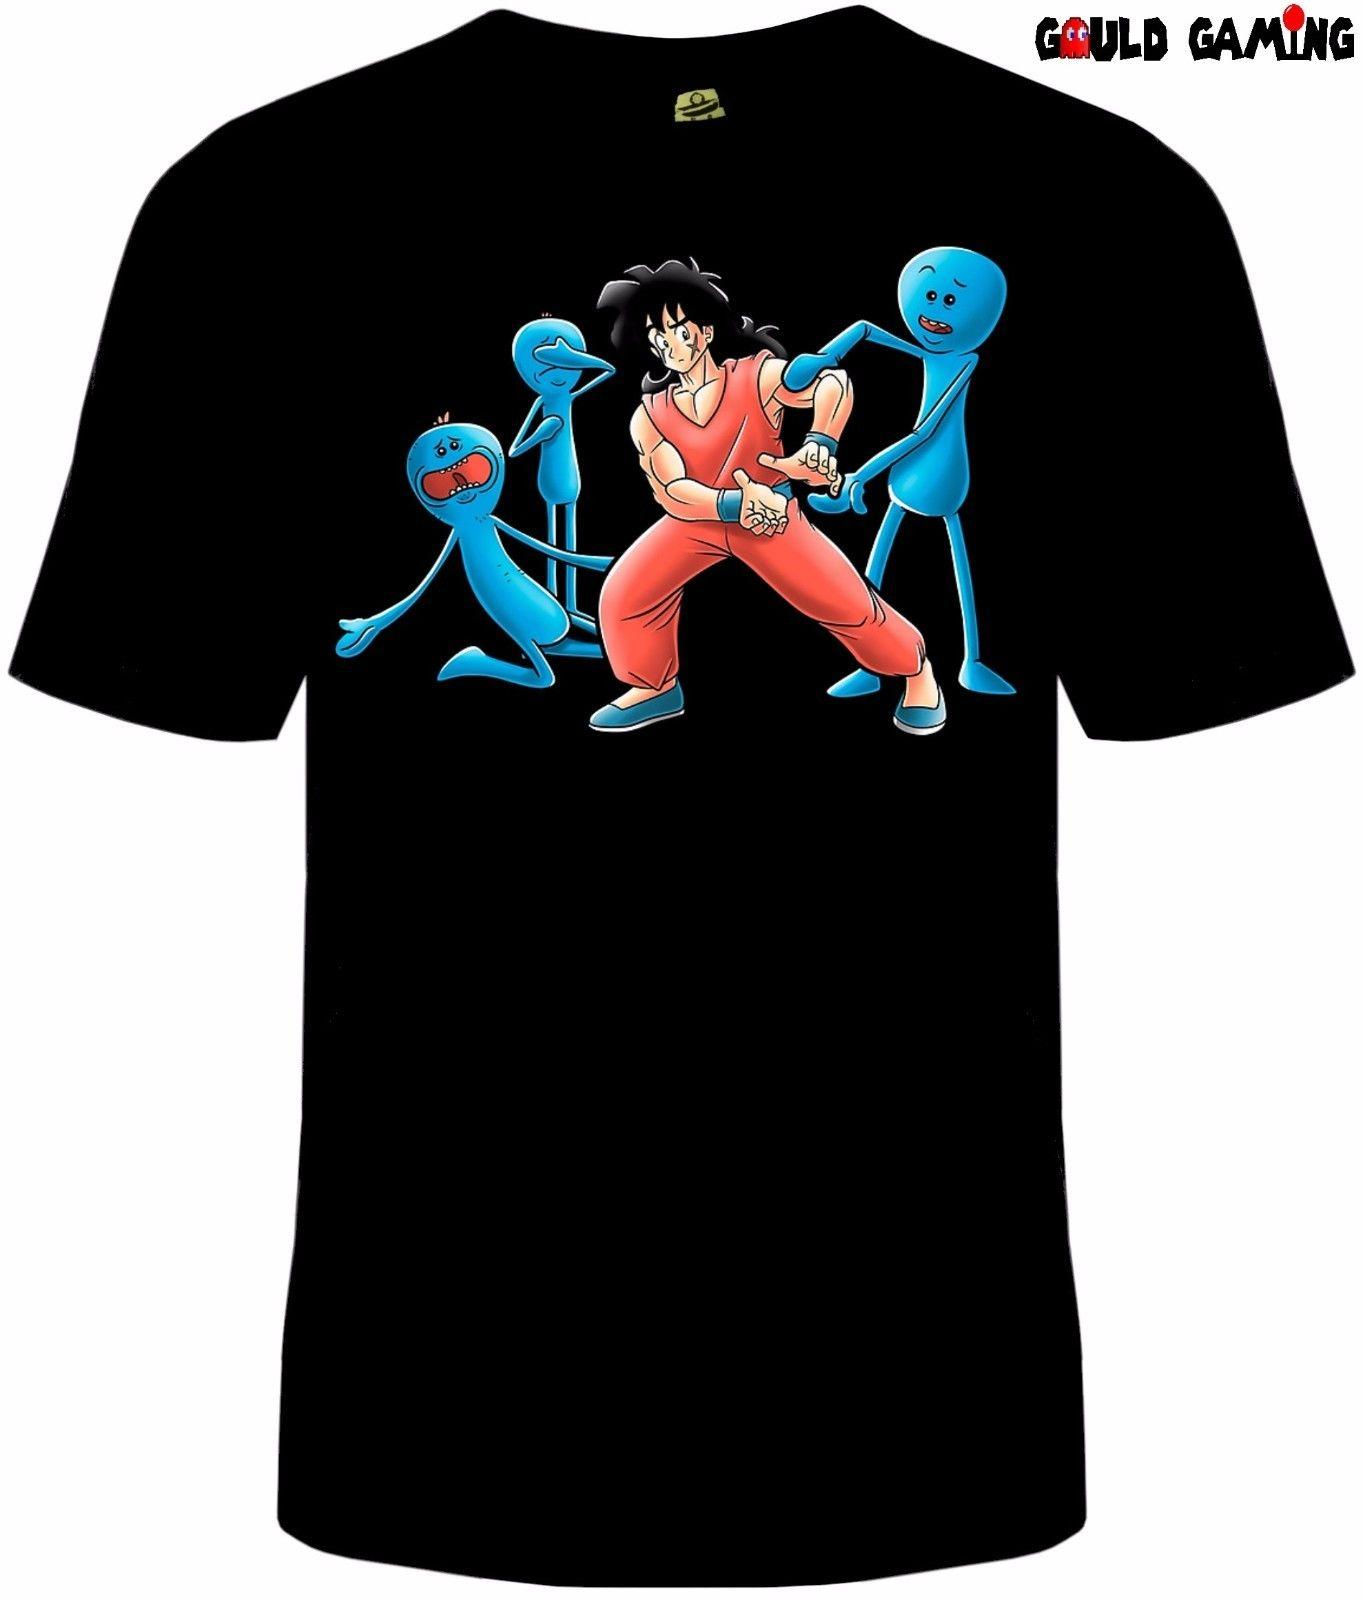 a1cf32950db5 Rick And Morty Mr. Meeseeks Dragon Ball Z Funny TV Unisex T Shirt Yamcha Ot  Shirts Best Designer T Shirts From Marcusdover